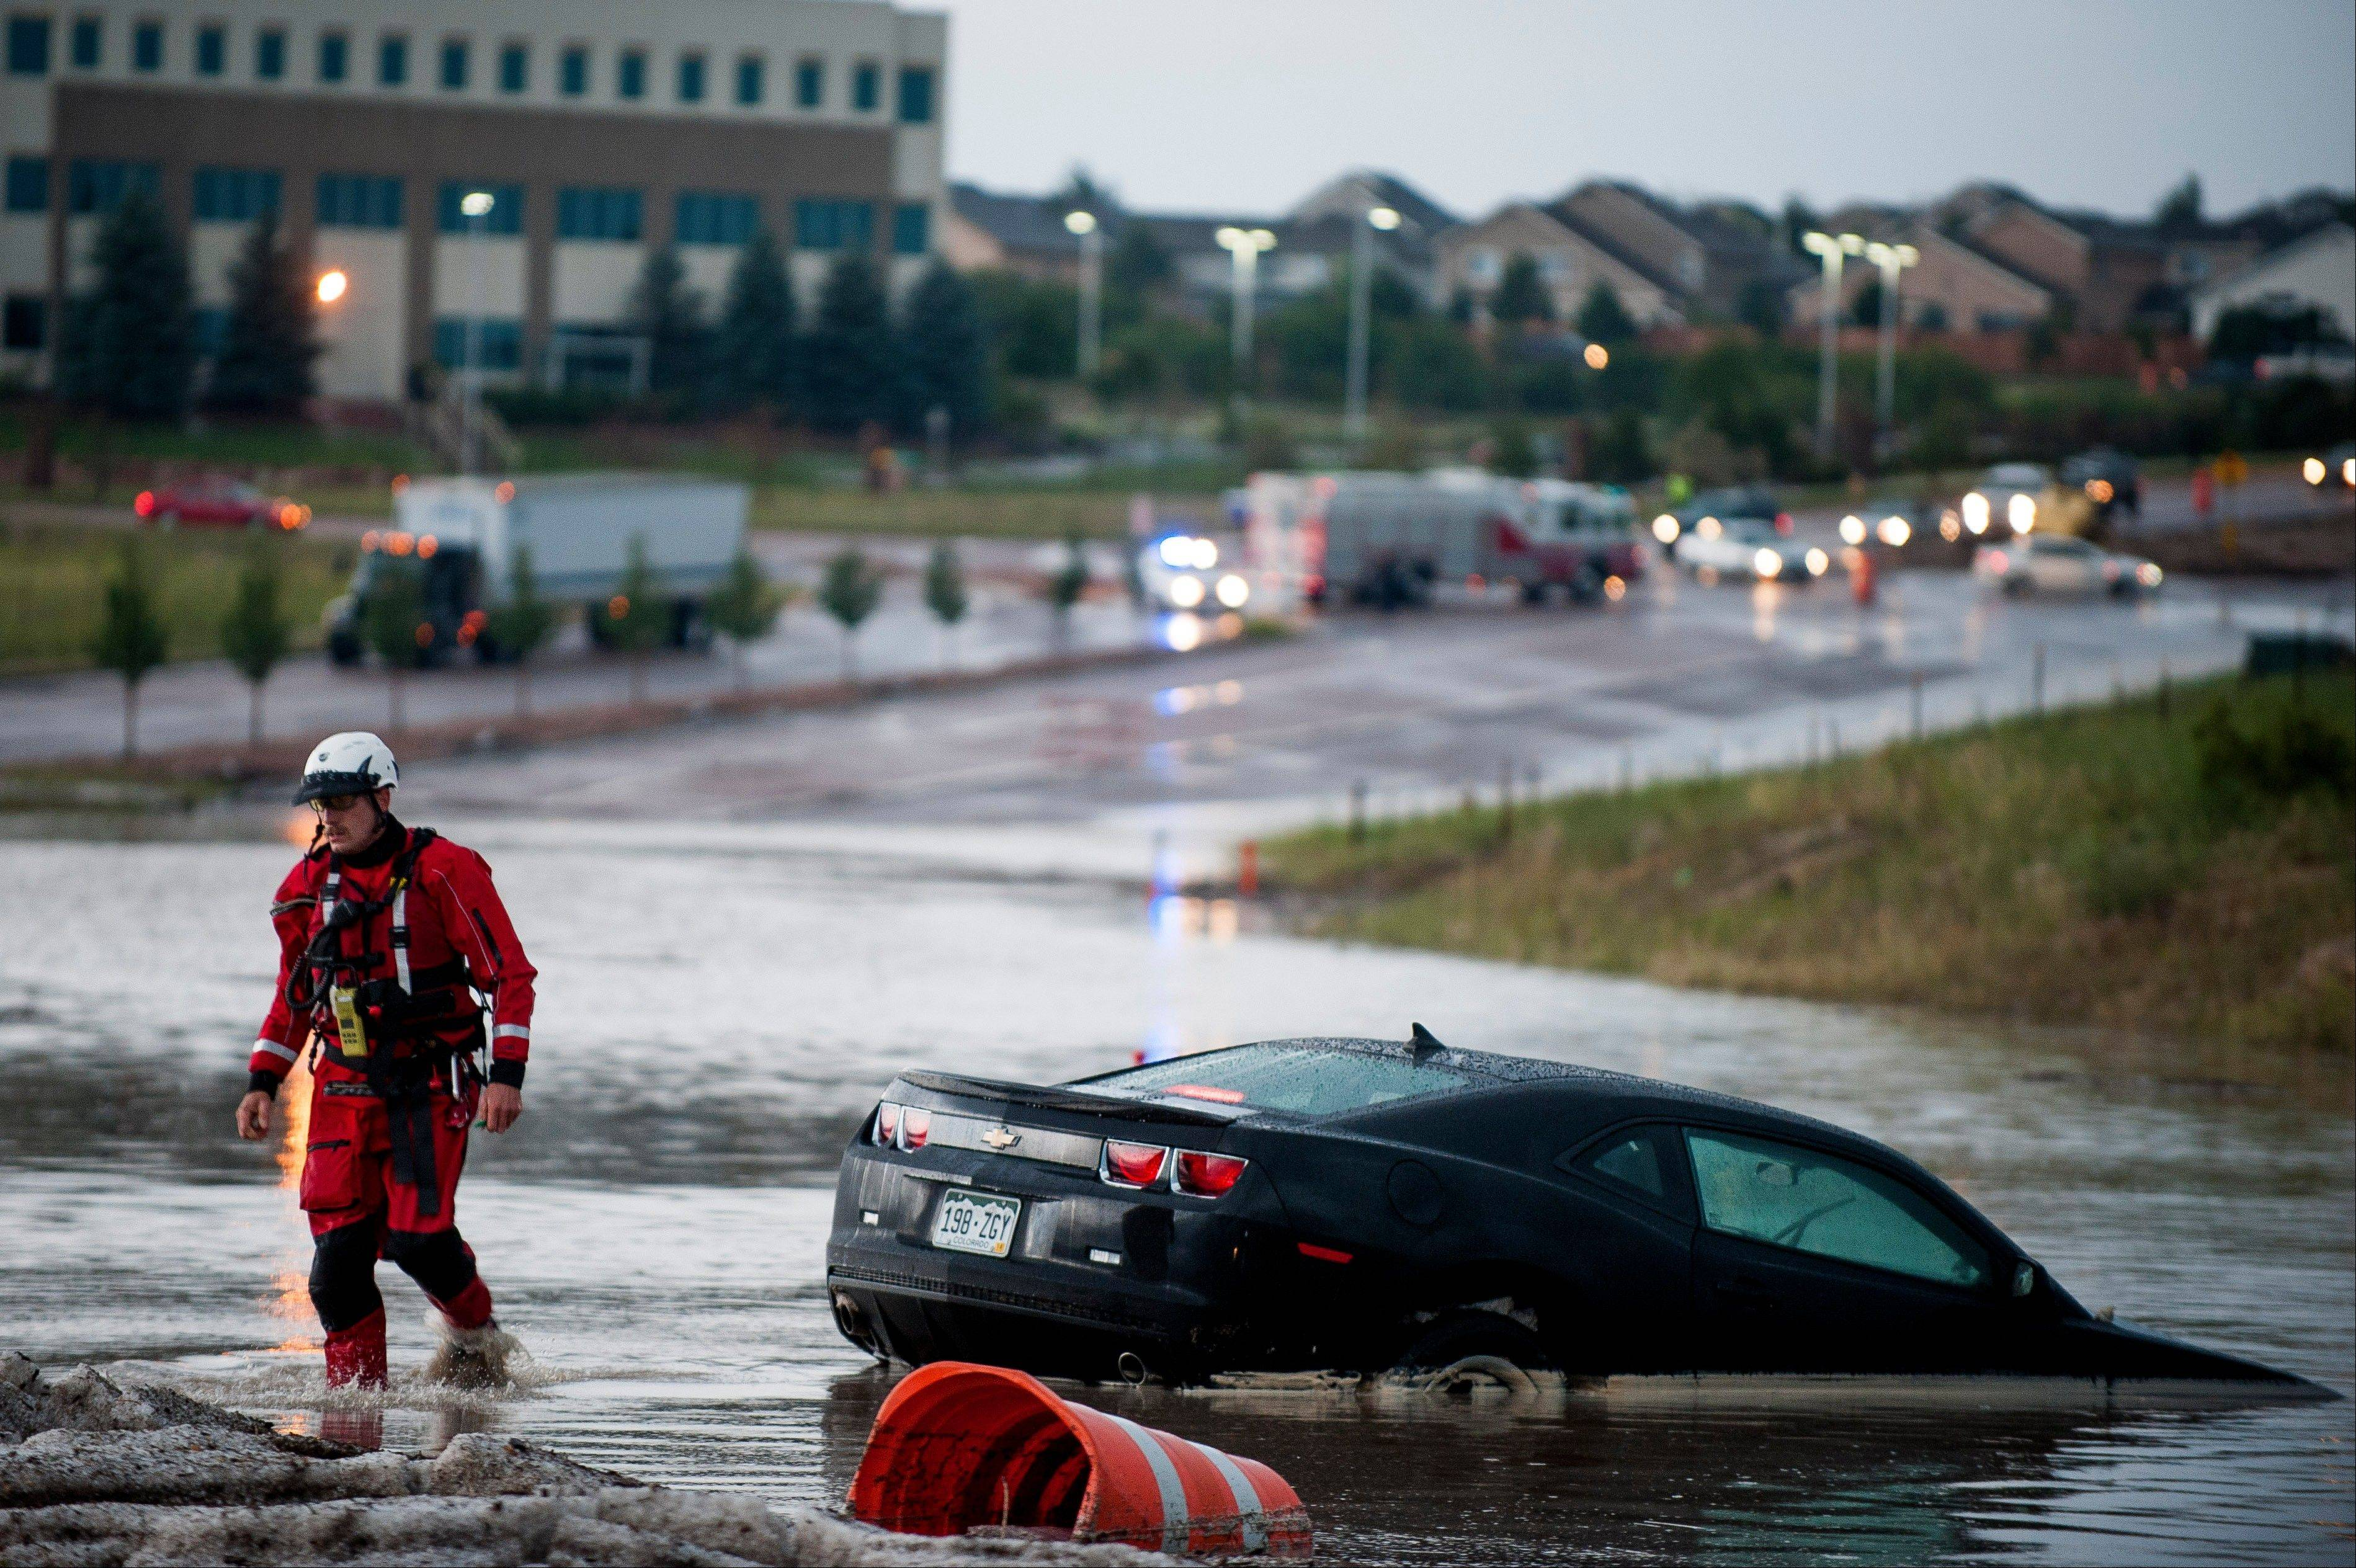 Keith Williams, with Colorado Springs Heavy Rescue, walks away from a car that was submerged when flash floodwaters rushed over Voyager Parkway near Copper Center Parkway Thursday, Aug. 22, 2013 in Colorado Springs, Colo.